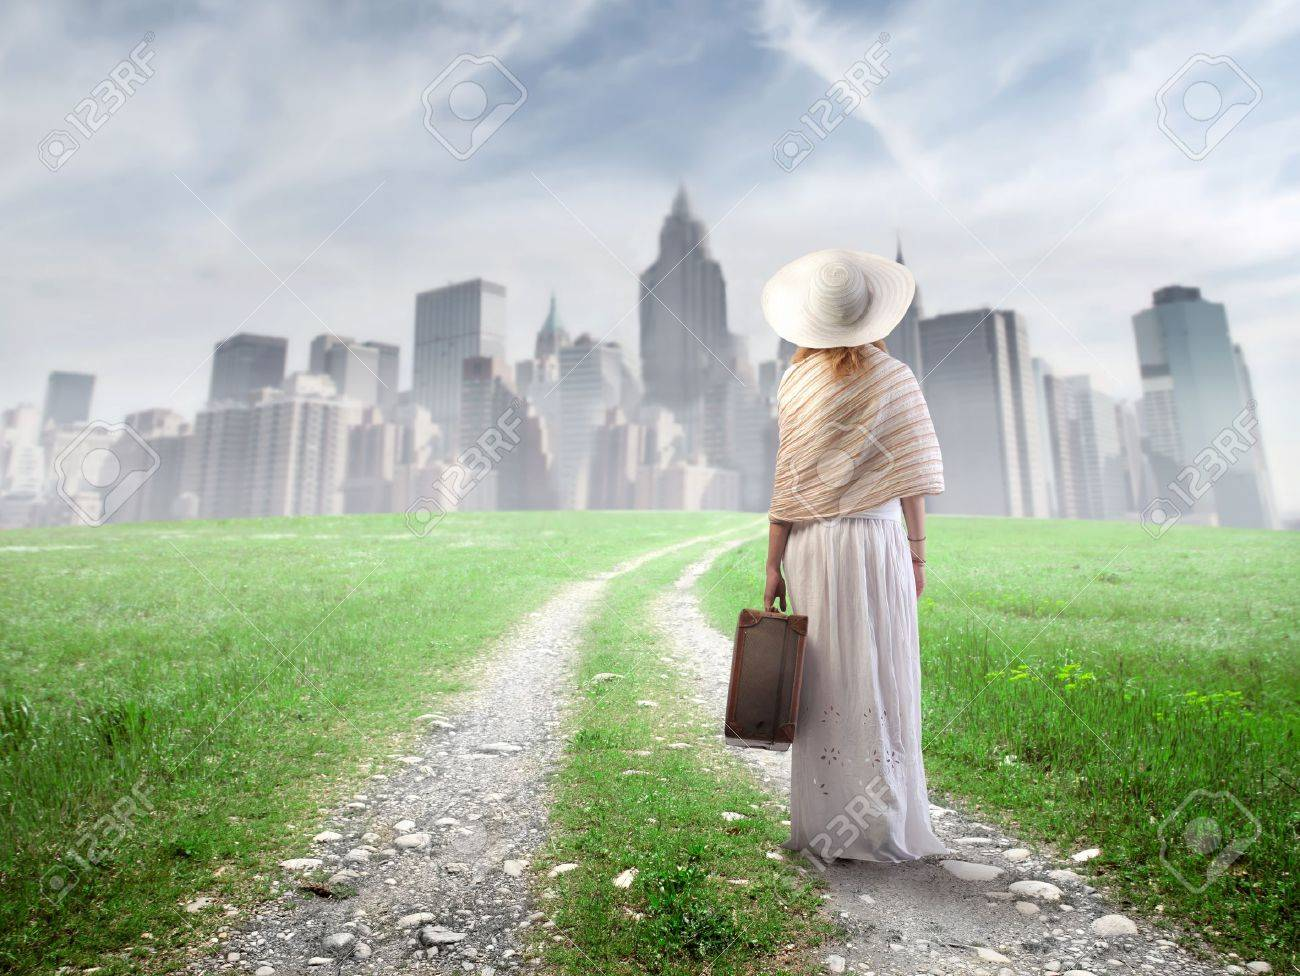 external image 10171737-Beautiful-woman-walking-towards-a-big-city-a-suitcase-in-her-hand-Stock-Photo.jpg